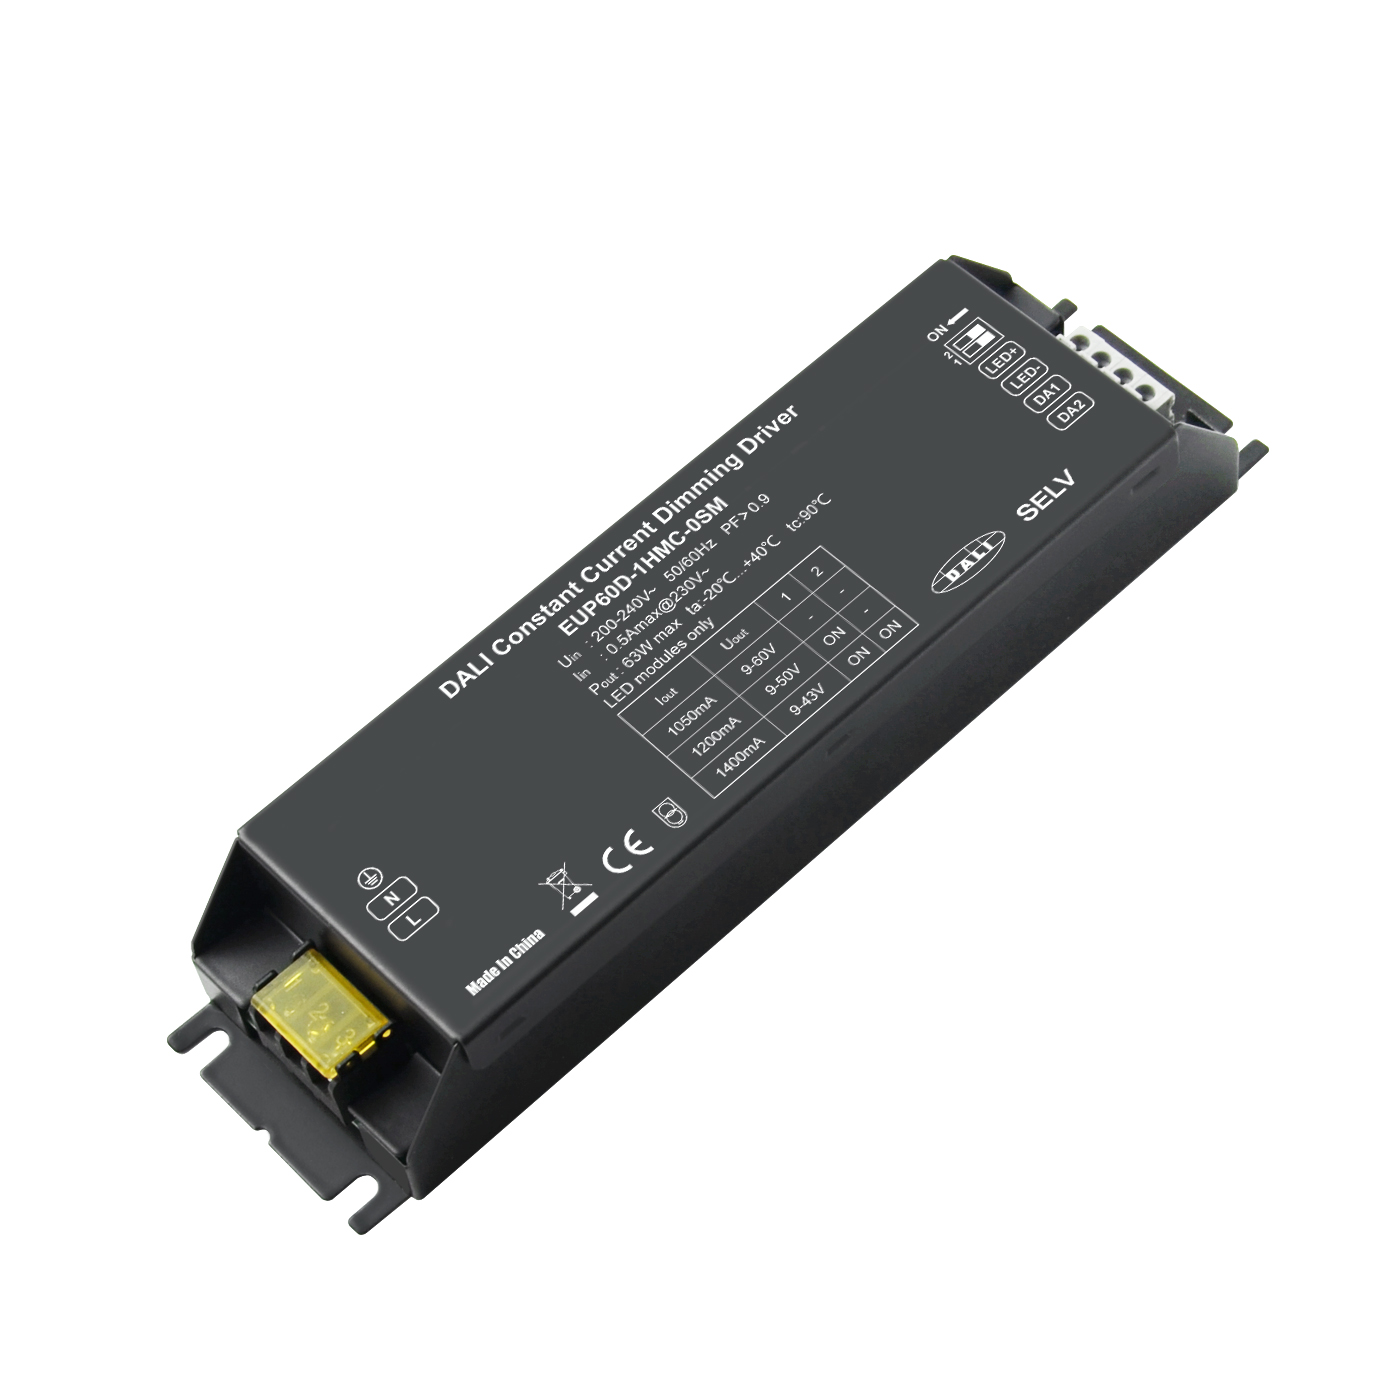 Quots for 24vdc Power Supply -